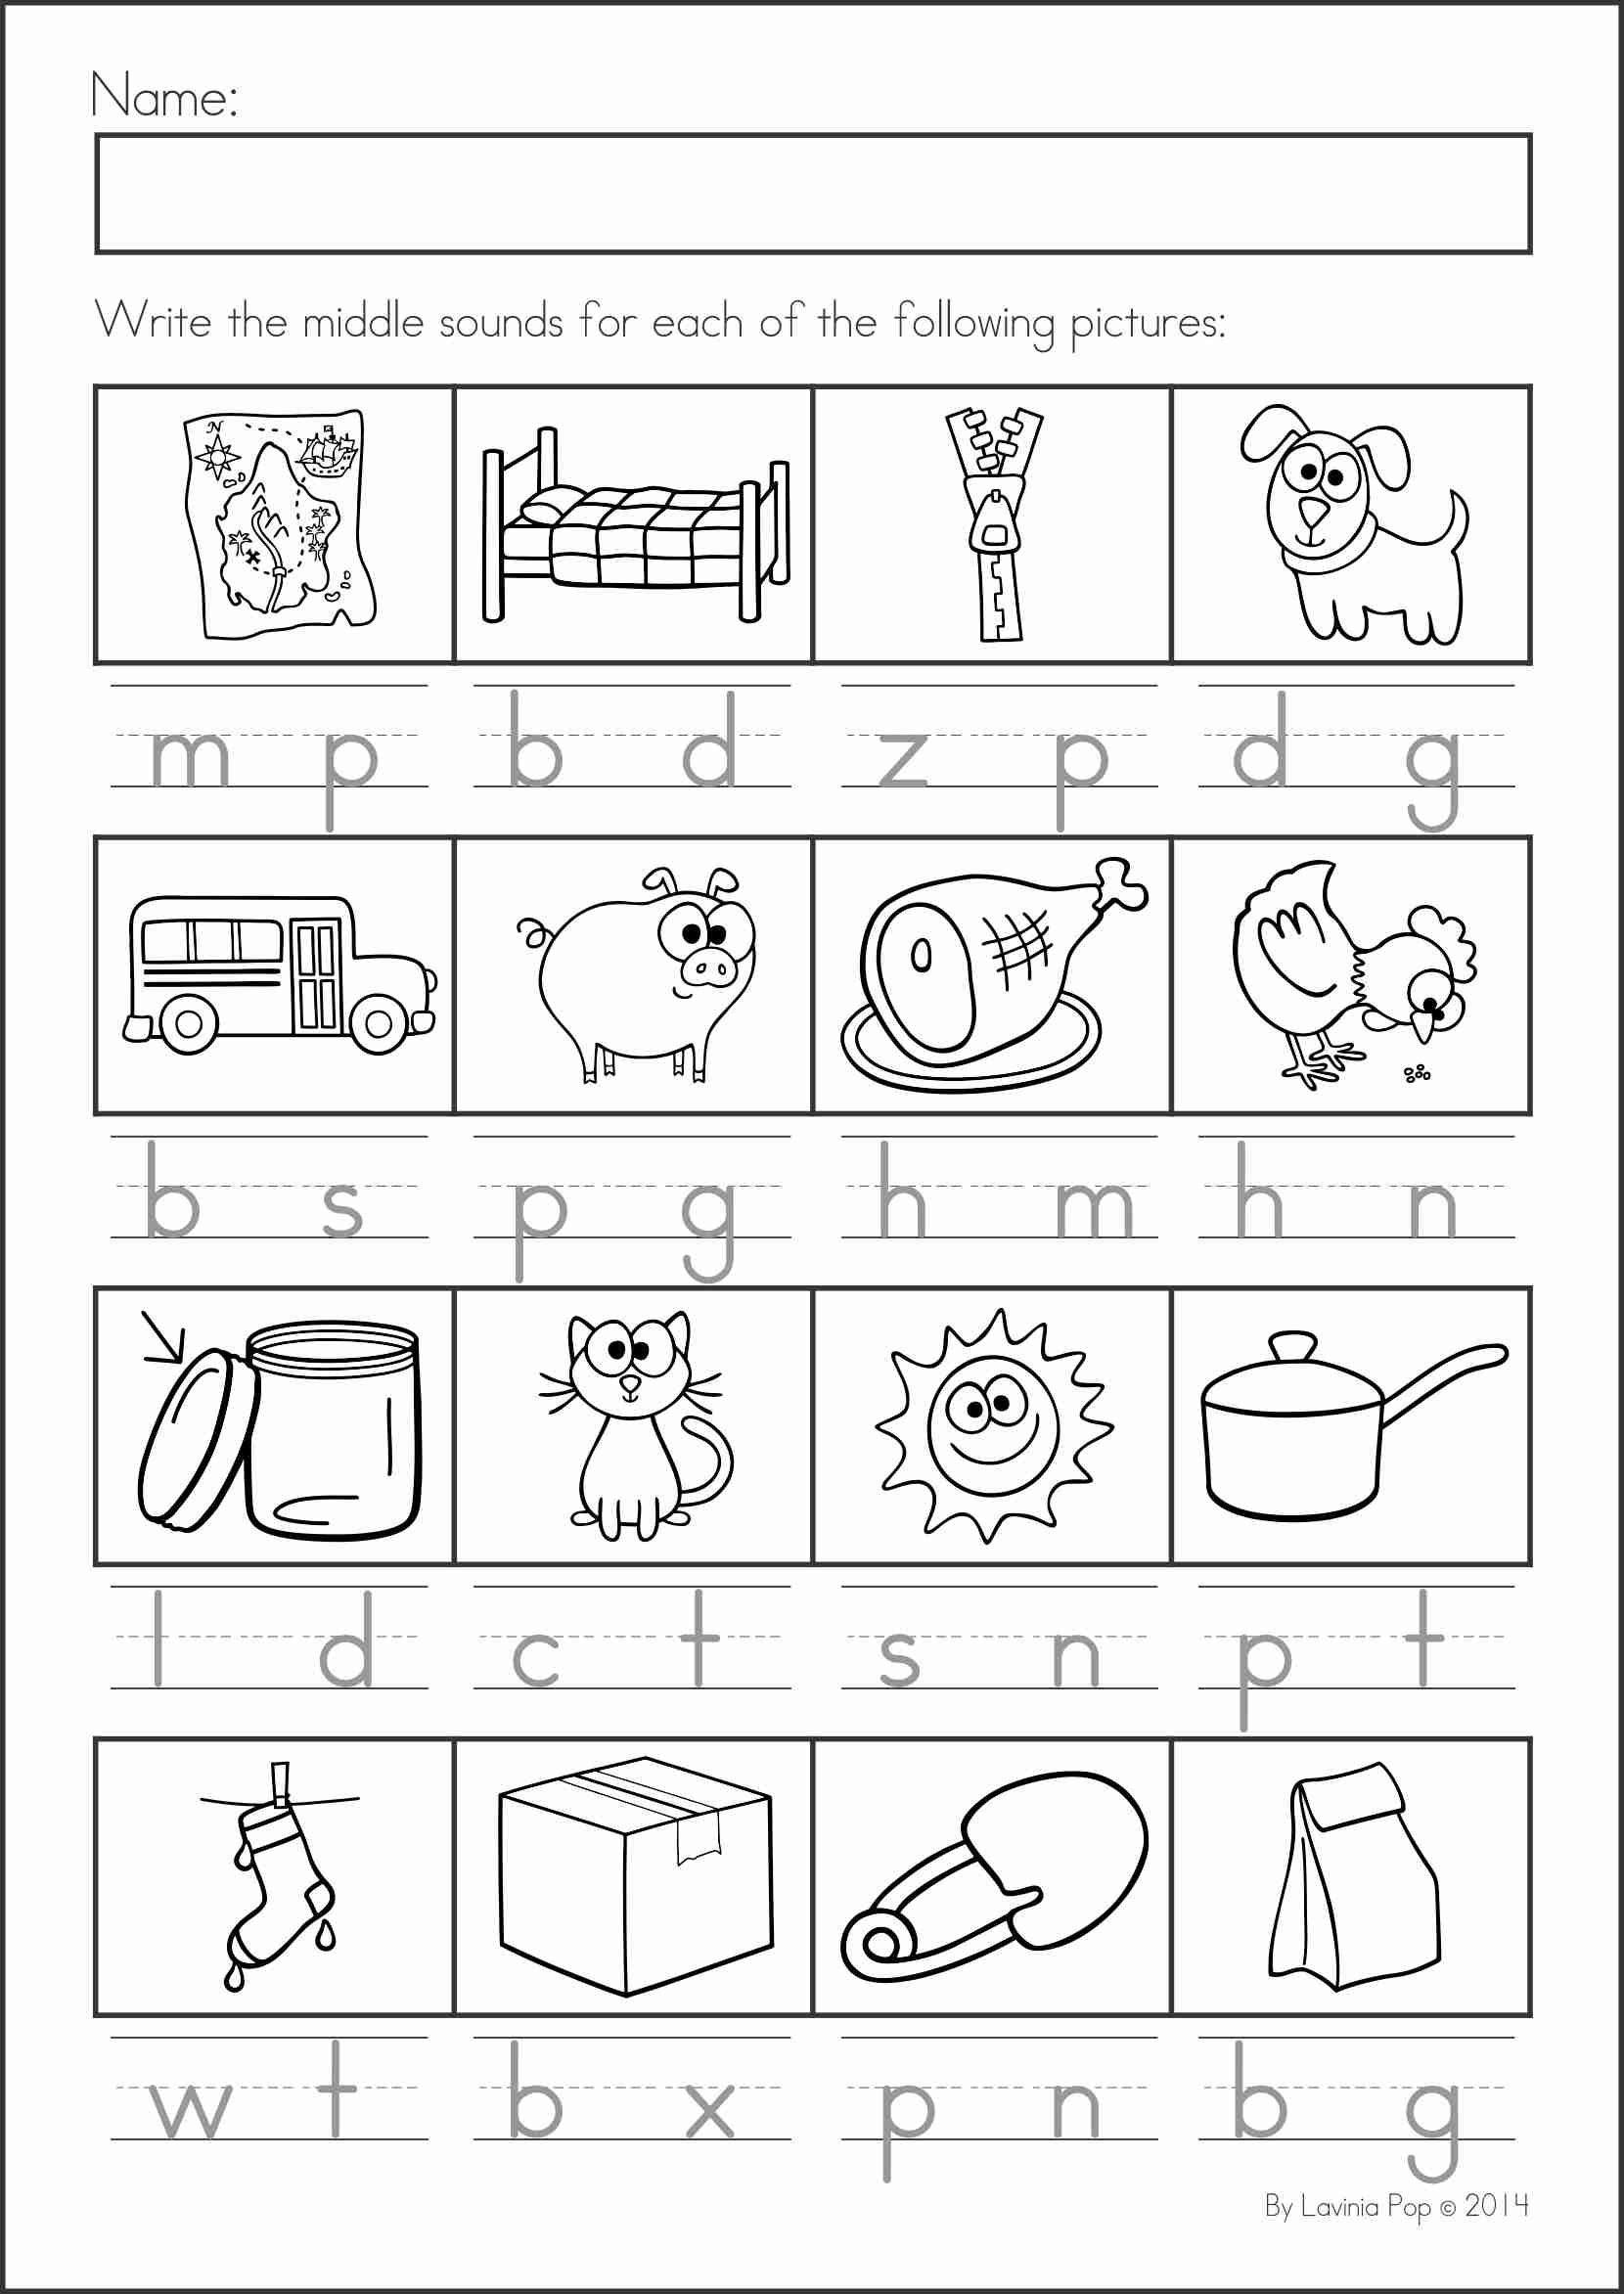 Worksheet Sounds Worksheets 17 best images about beginning middle ending sounds on pinterest literacy and letter worksheets